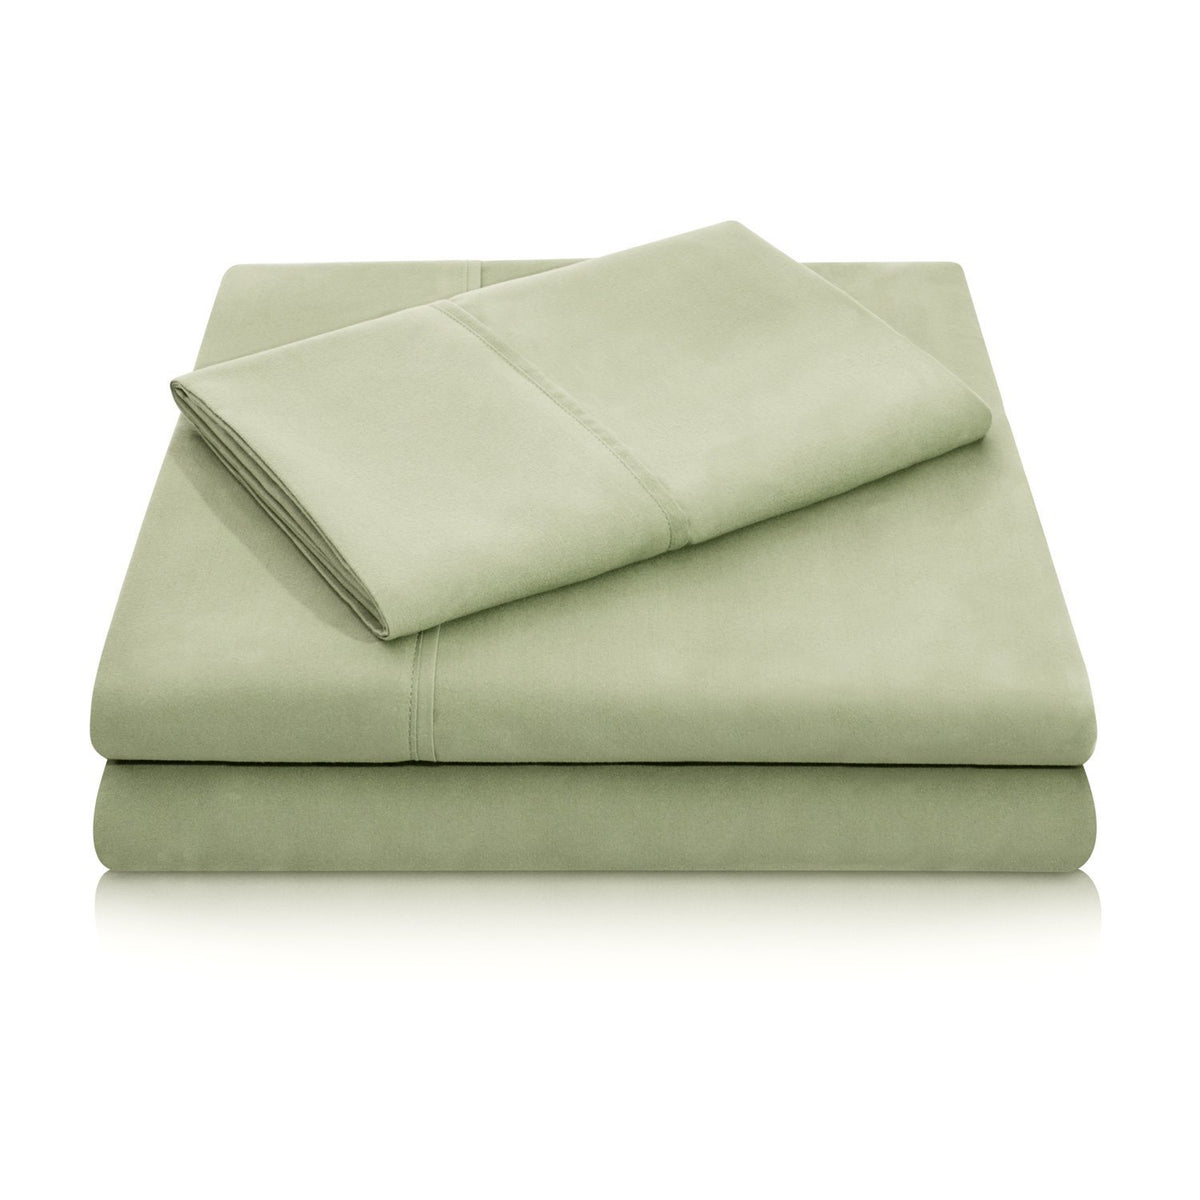 WOVEN Brushed Microfiber Sheet Set Sheet Set Malouf Twin Fern